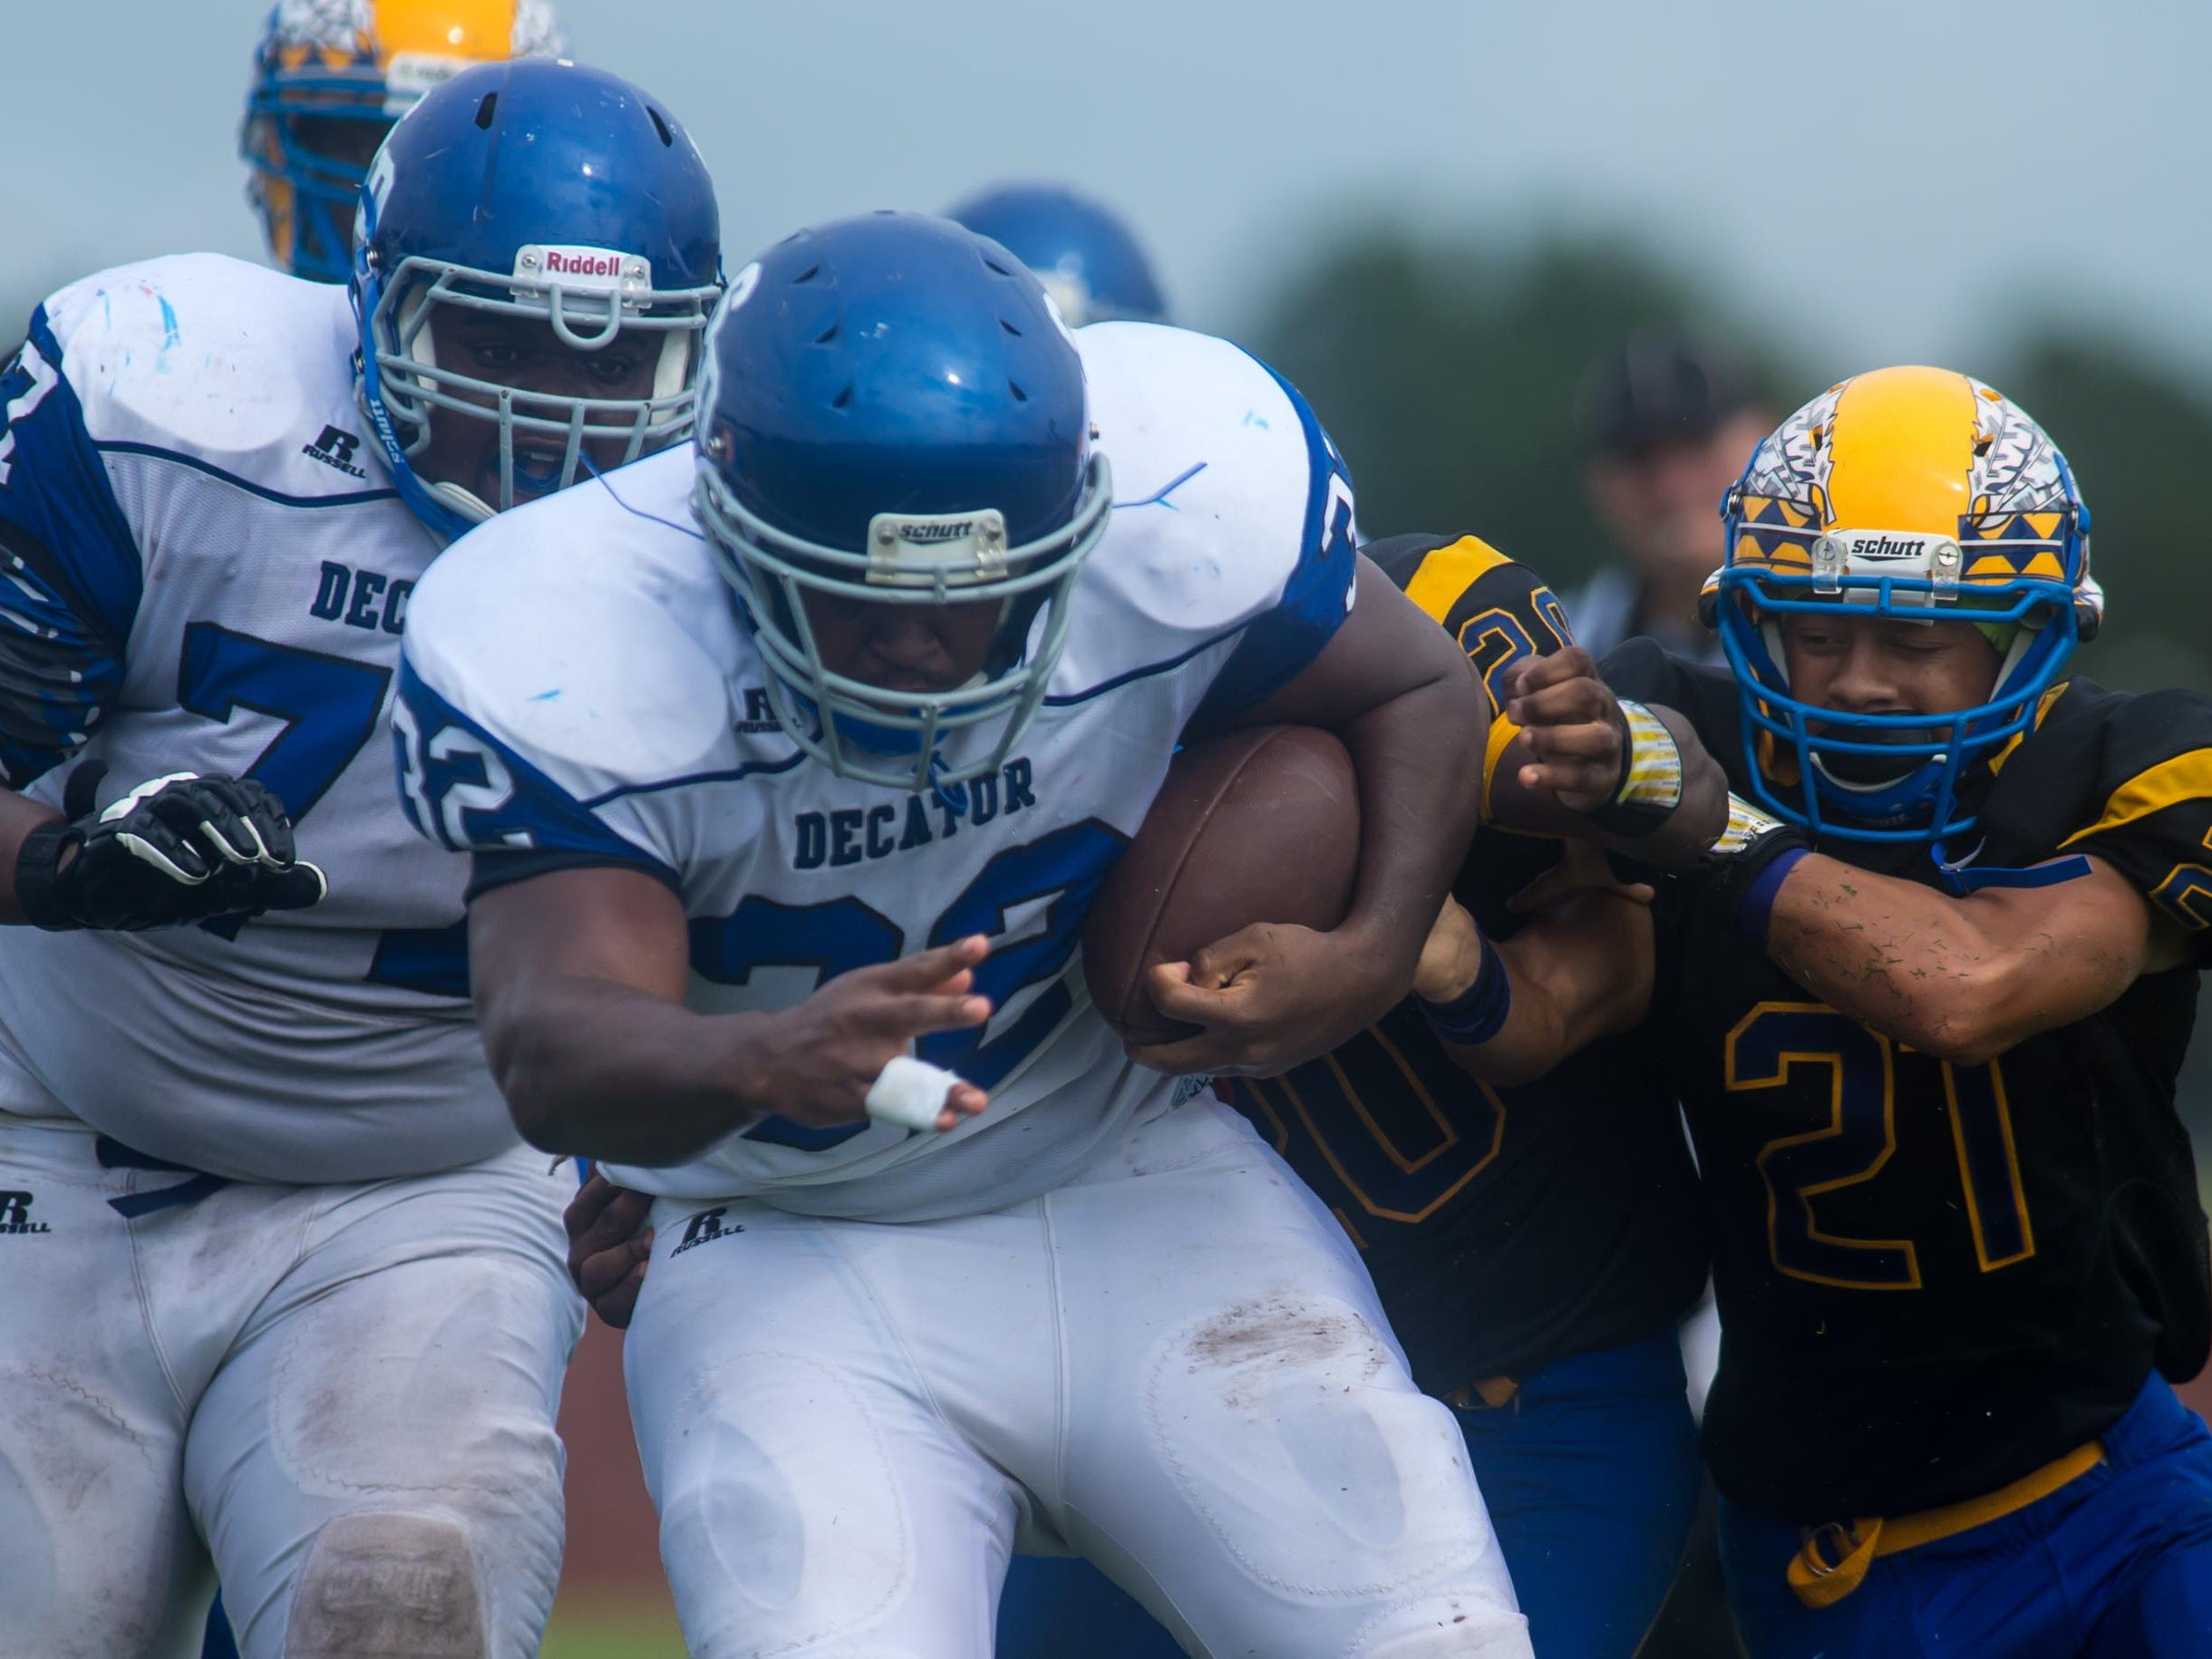 Stephen Decatur tight end De'Quan Andrews (32) rumbles for a huge third down gain against Wicomico High on Saturday afternoon at Wicomico County Stadium.